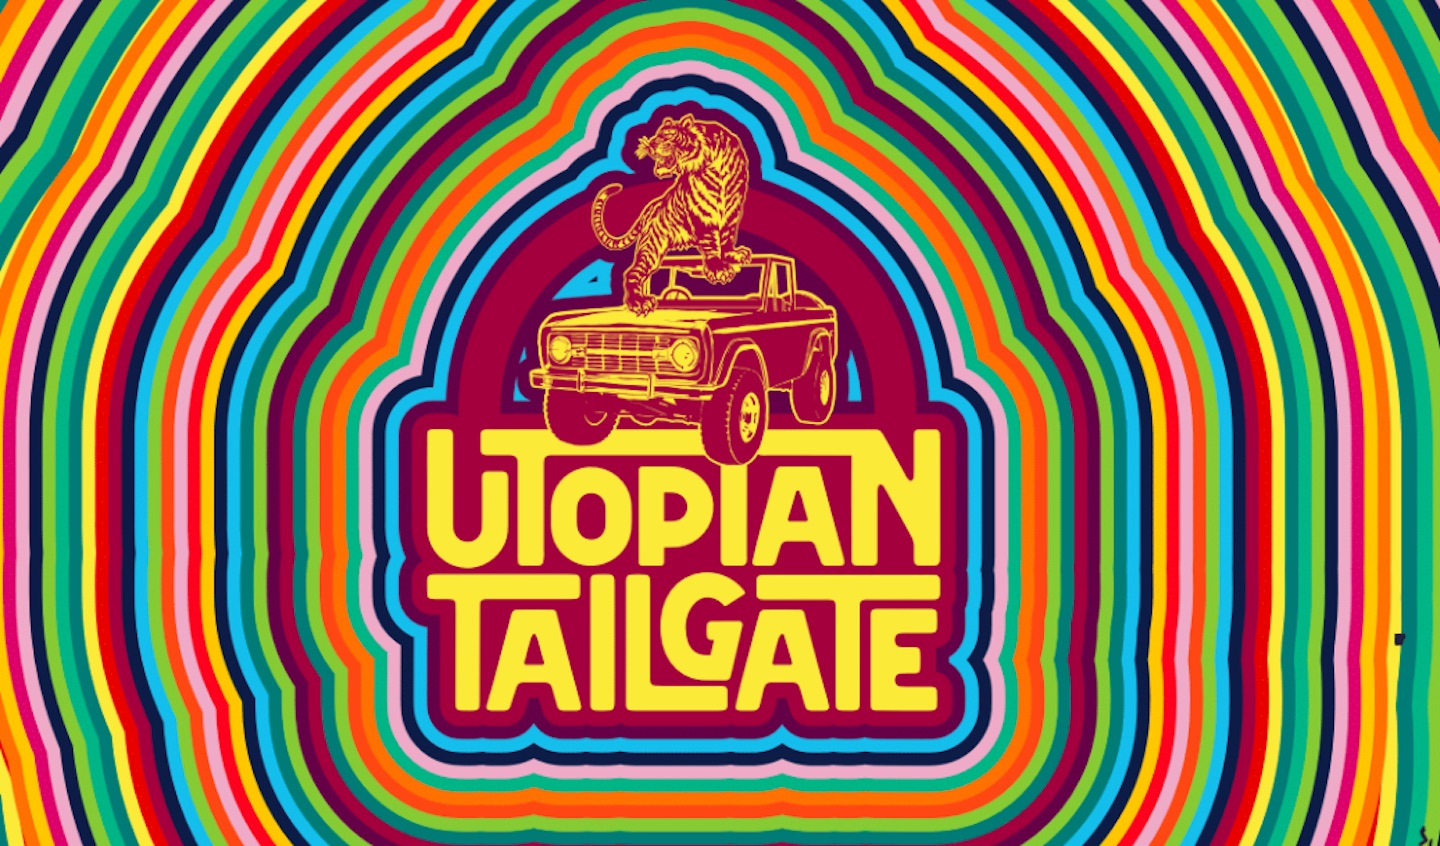 Utopian Tailgate is NOW OPEN on The Second City Rooftop